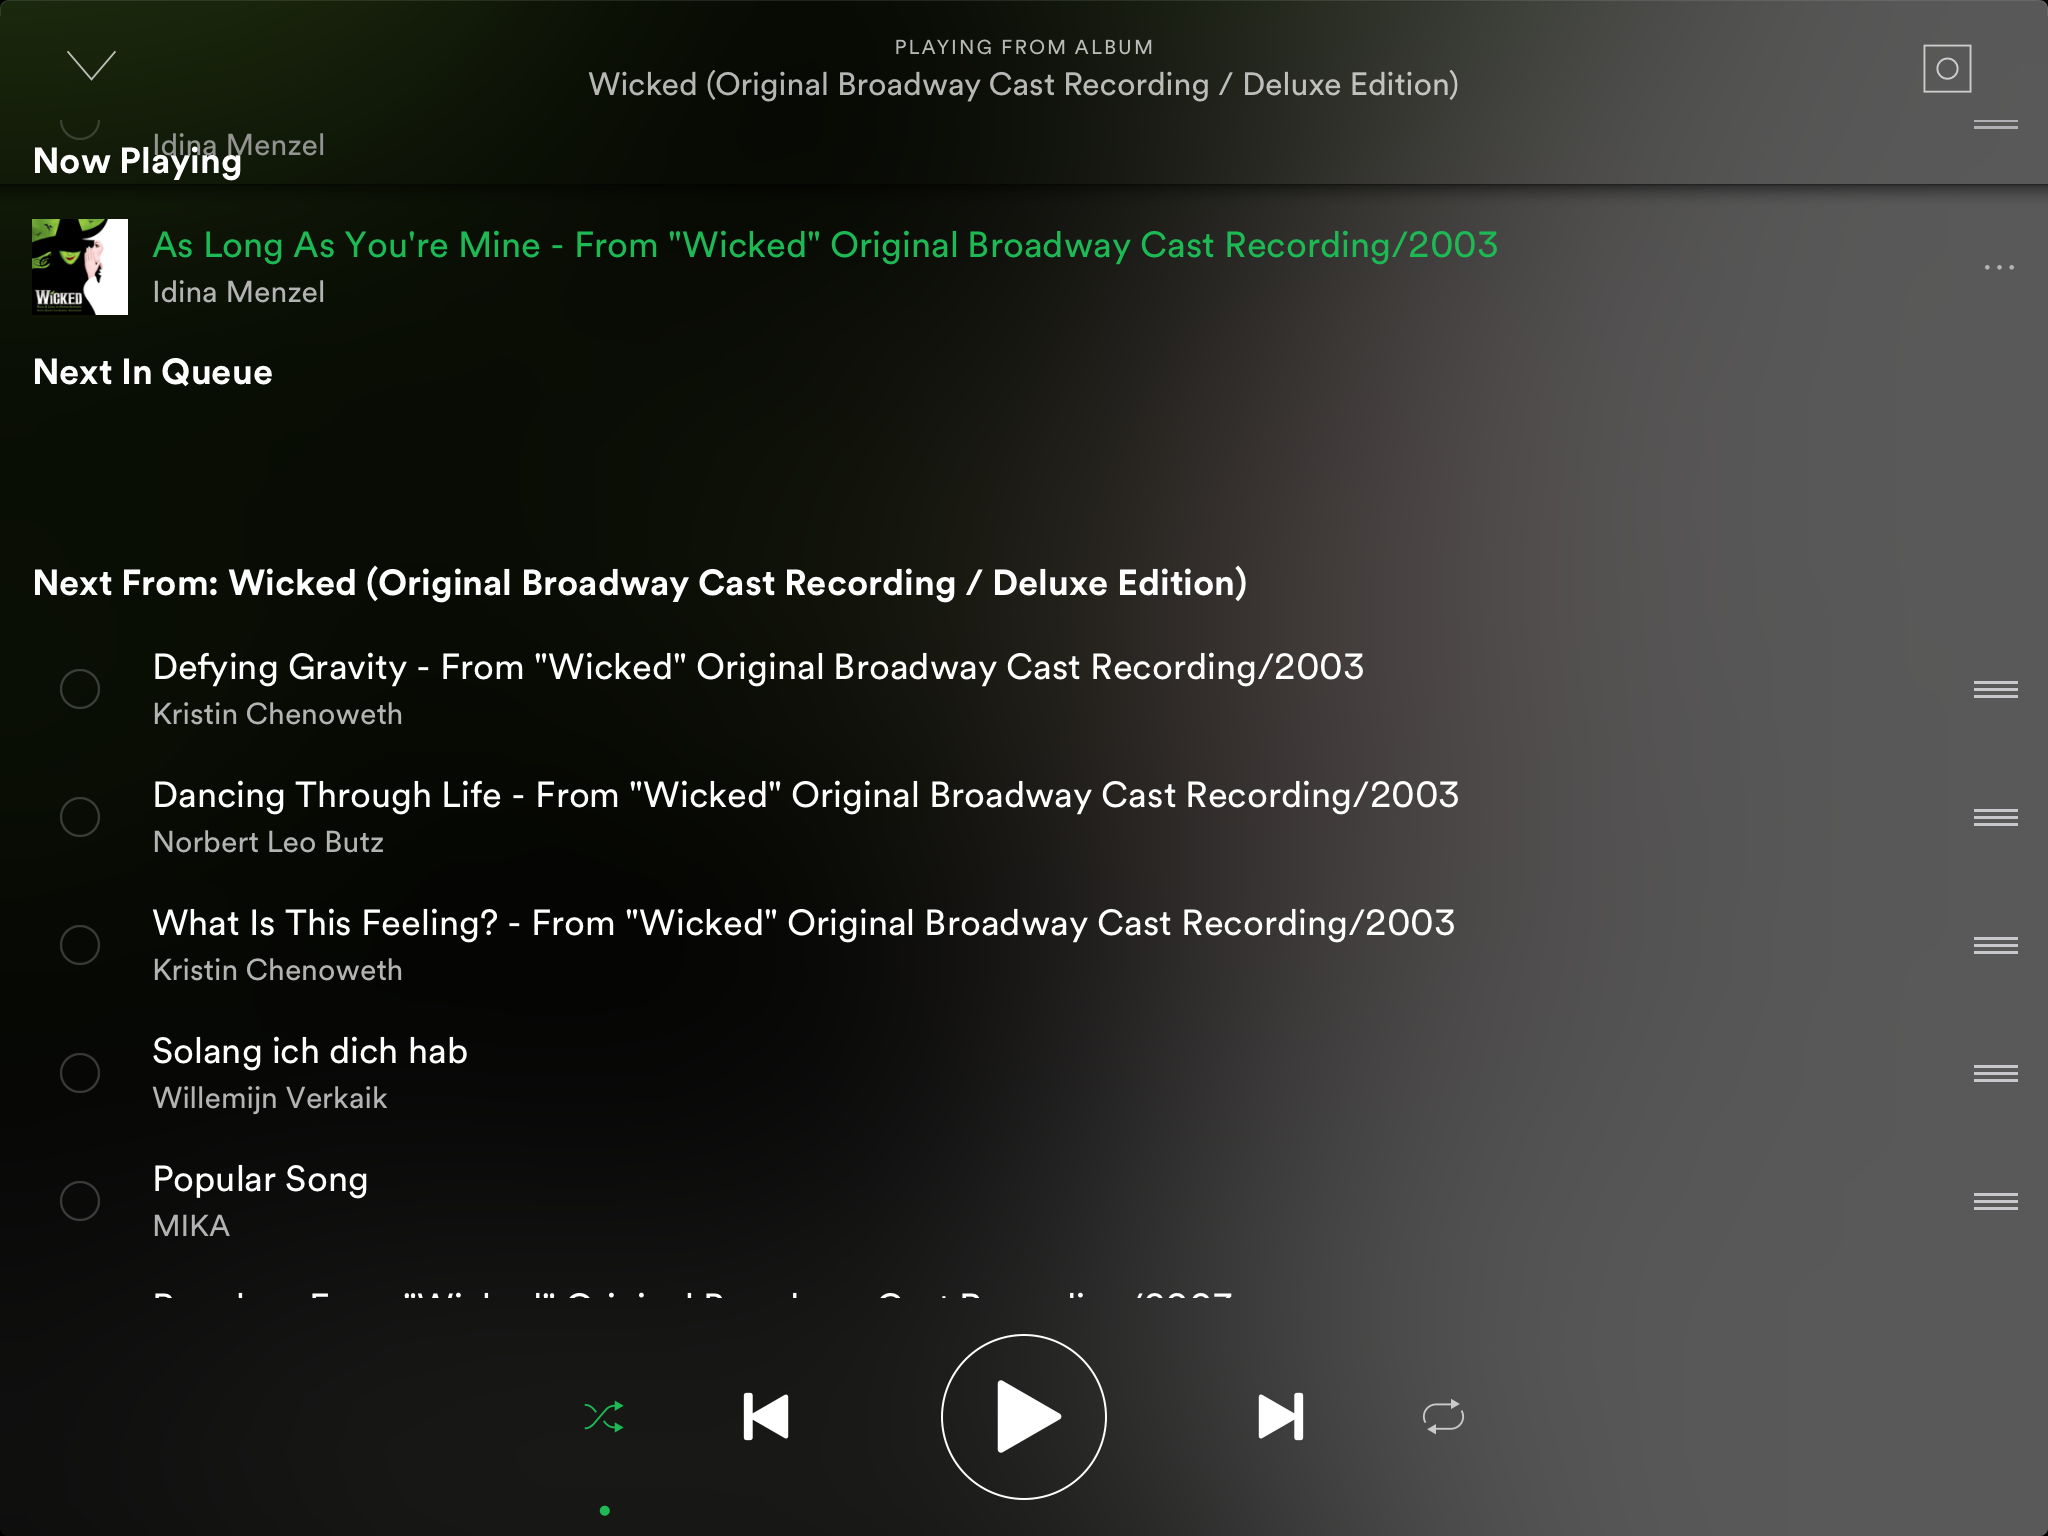 App freezes and crashes when moving items in the s    - The Spotify